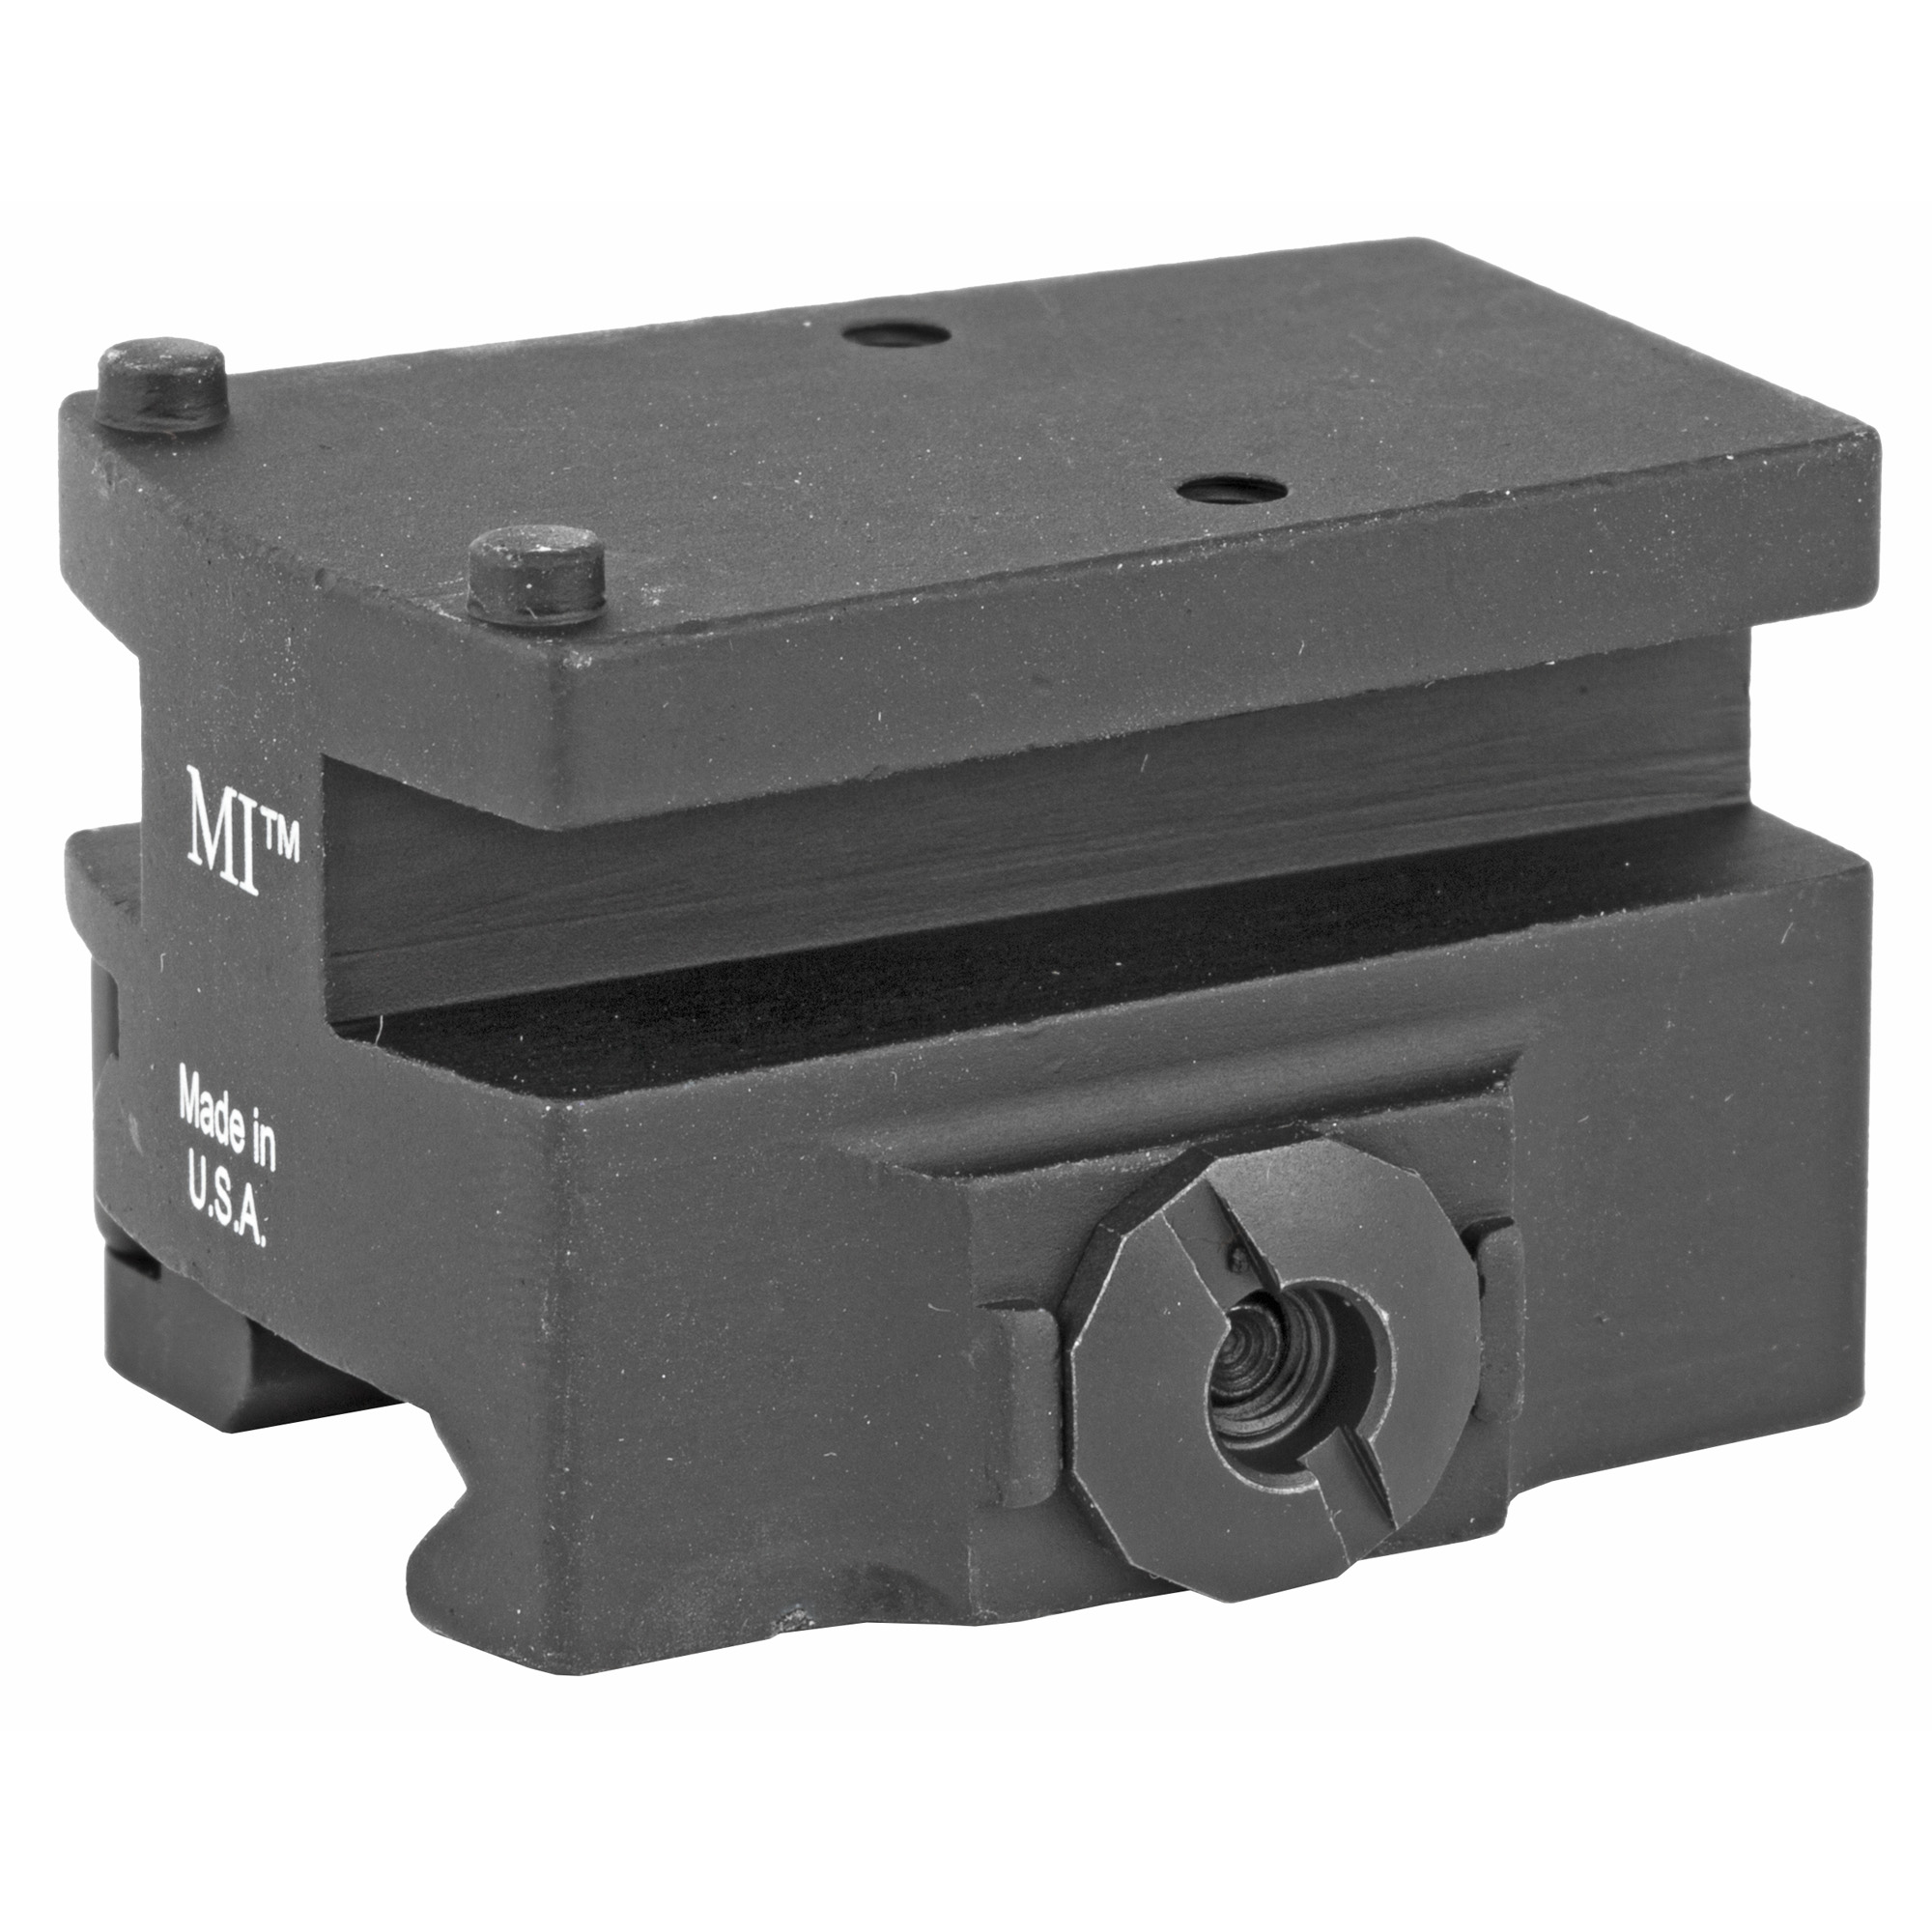 Co-witness Trijicon RMR QD mount made by Midwest Industries.